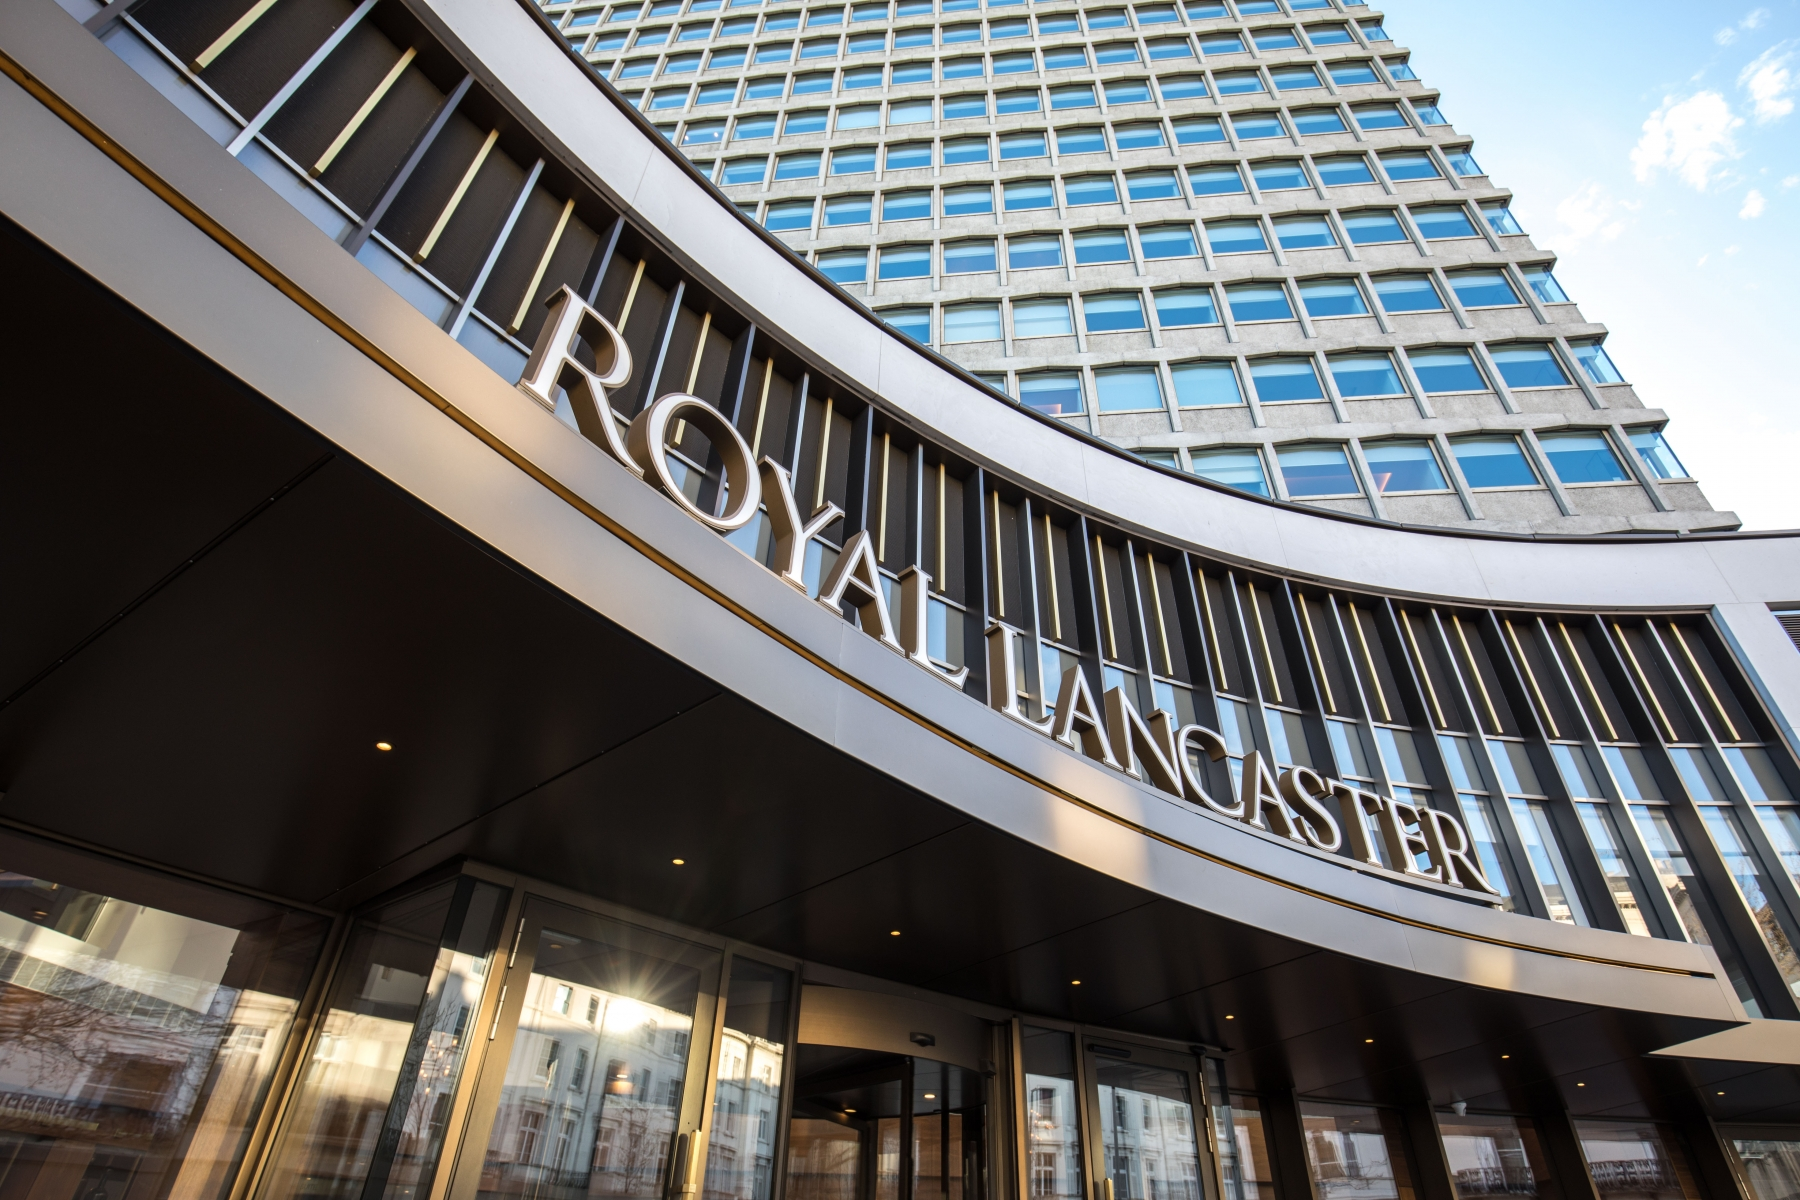 Royal Lancaster London Hotel